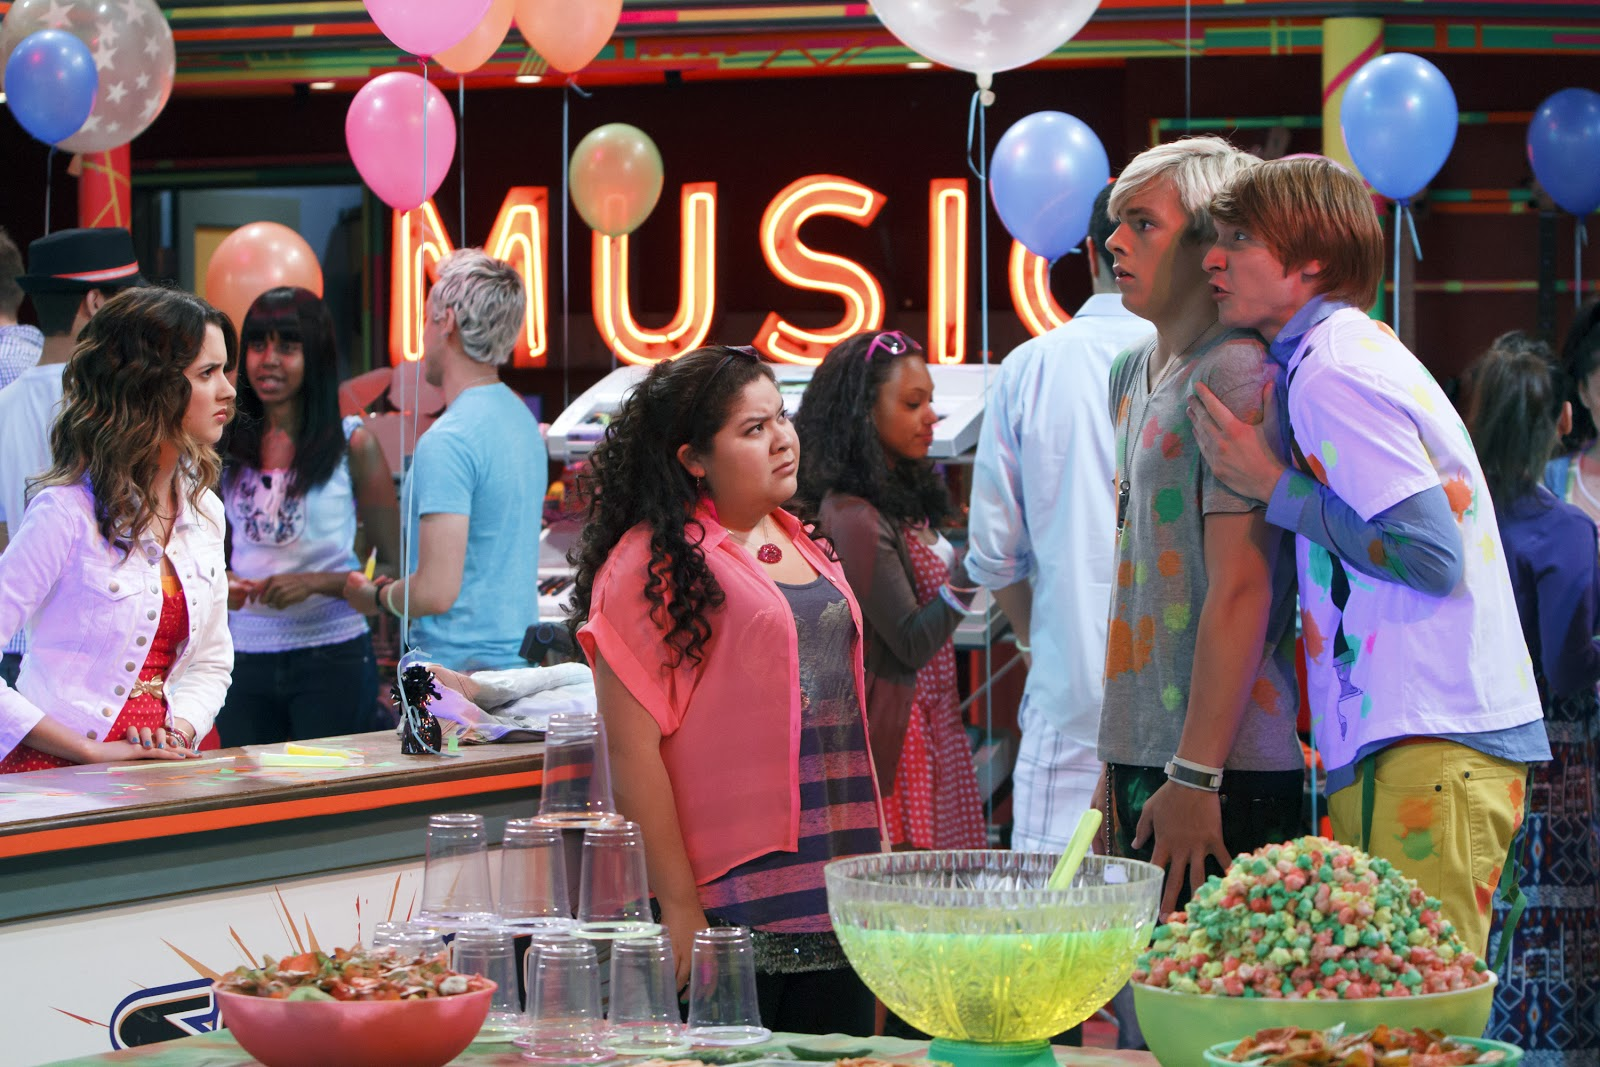 Is austin and ally really hookup in real life